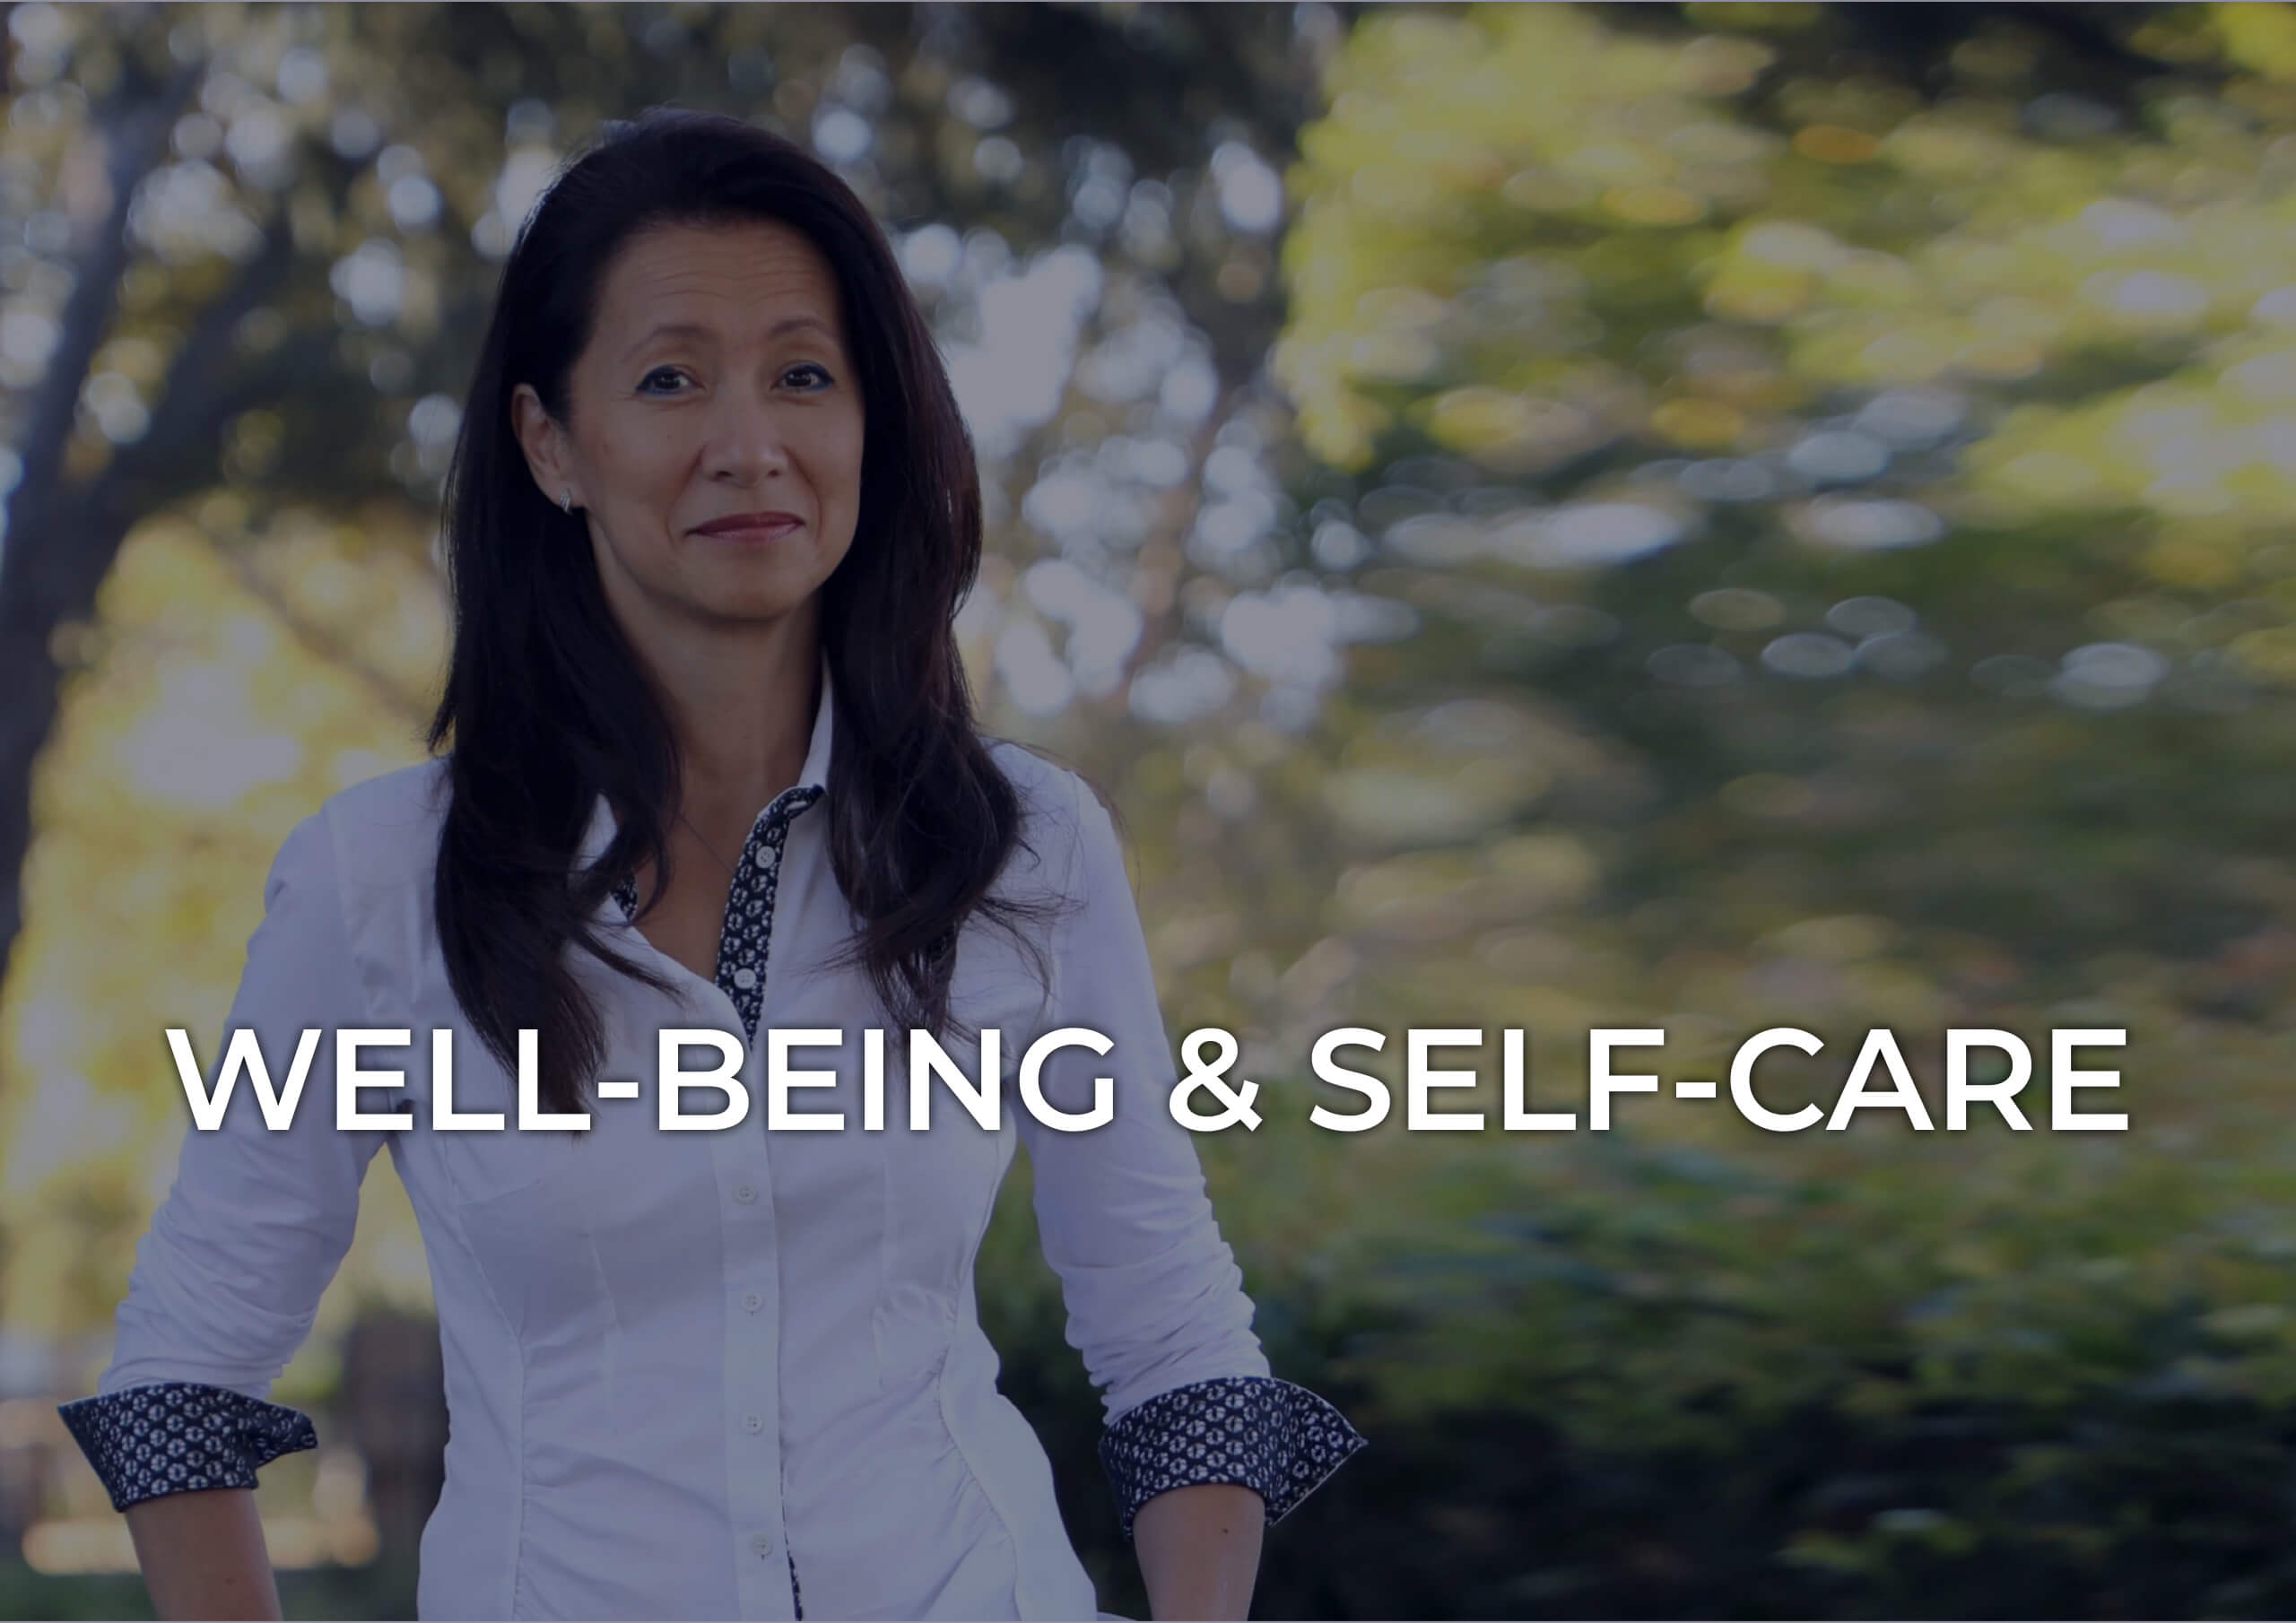 Well-Being & Self-Care